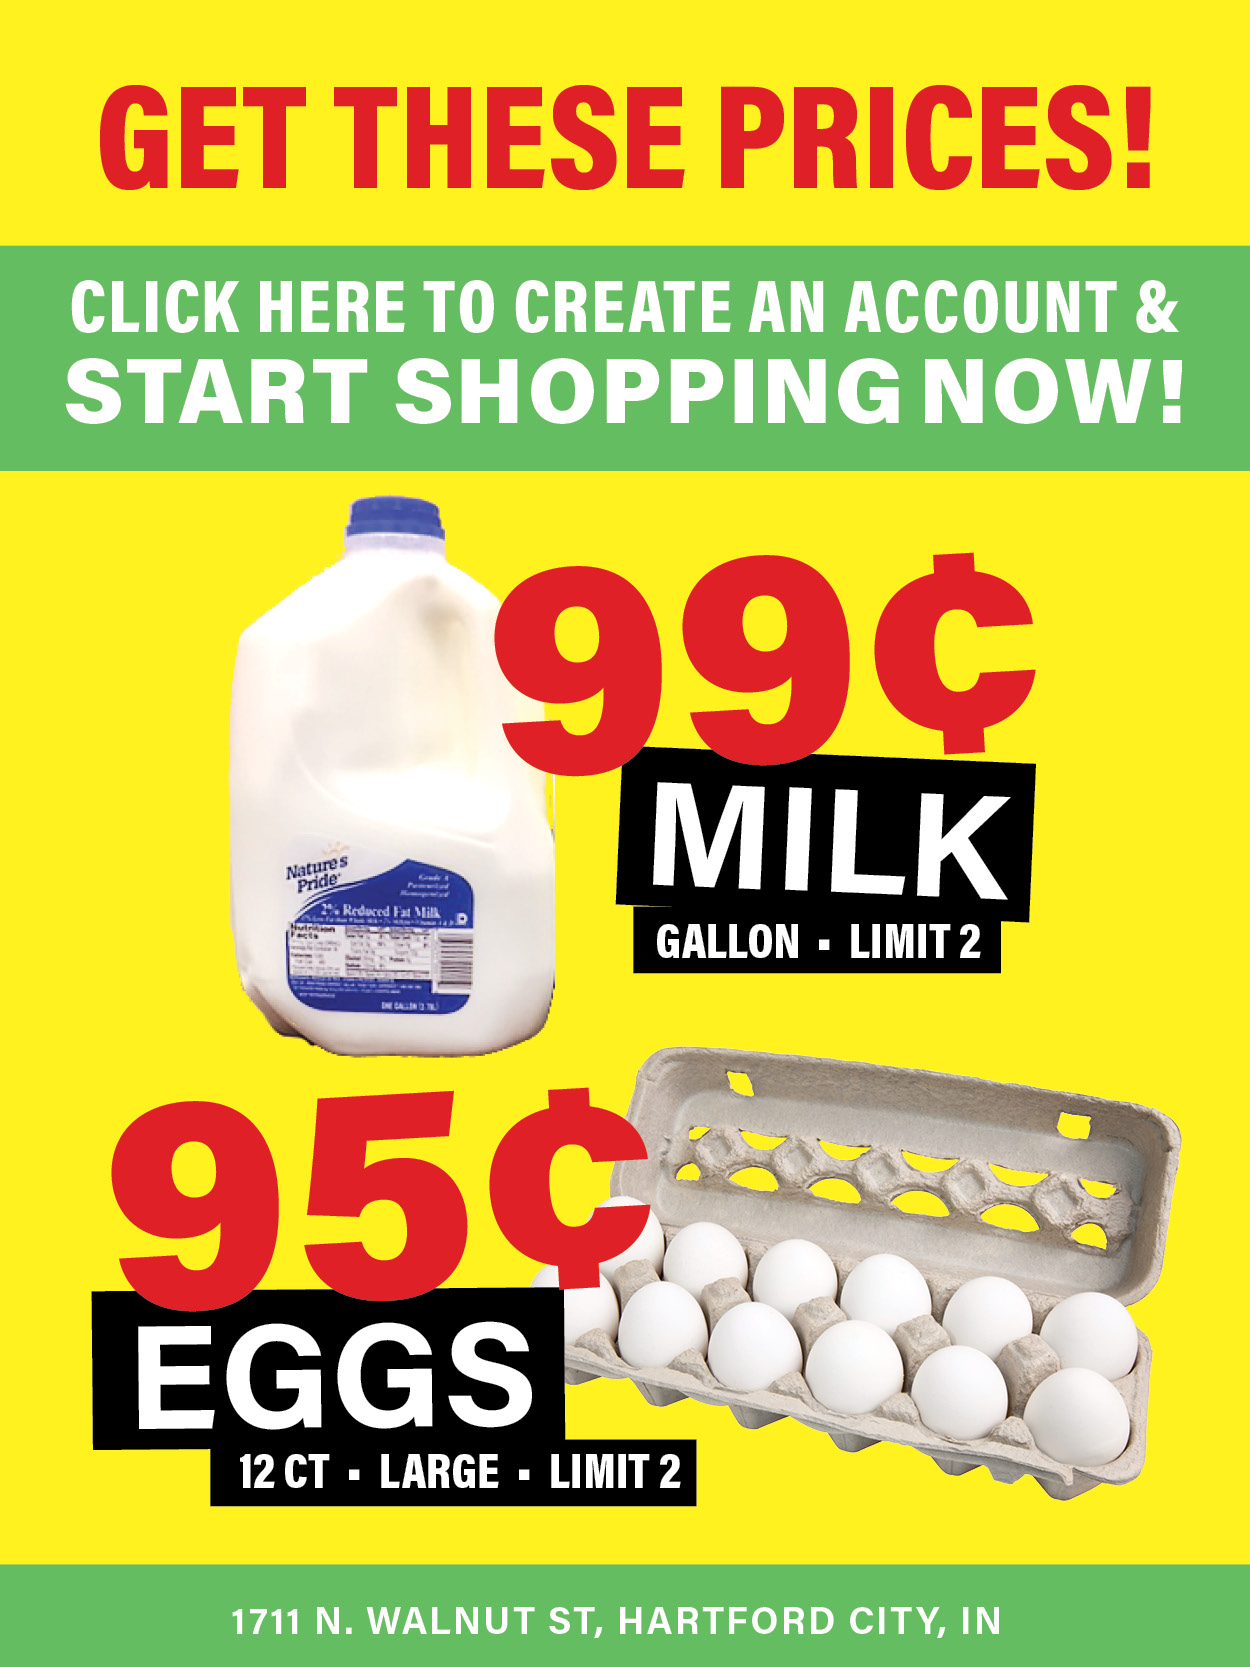 Sign up for an account to get 99¢ milk and more!